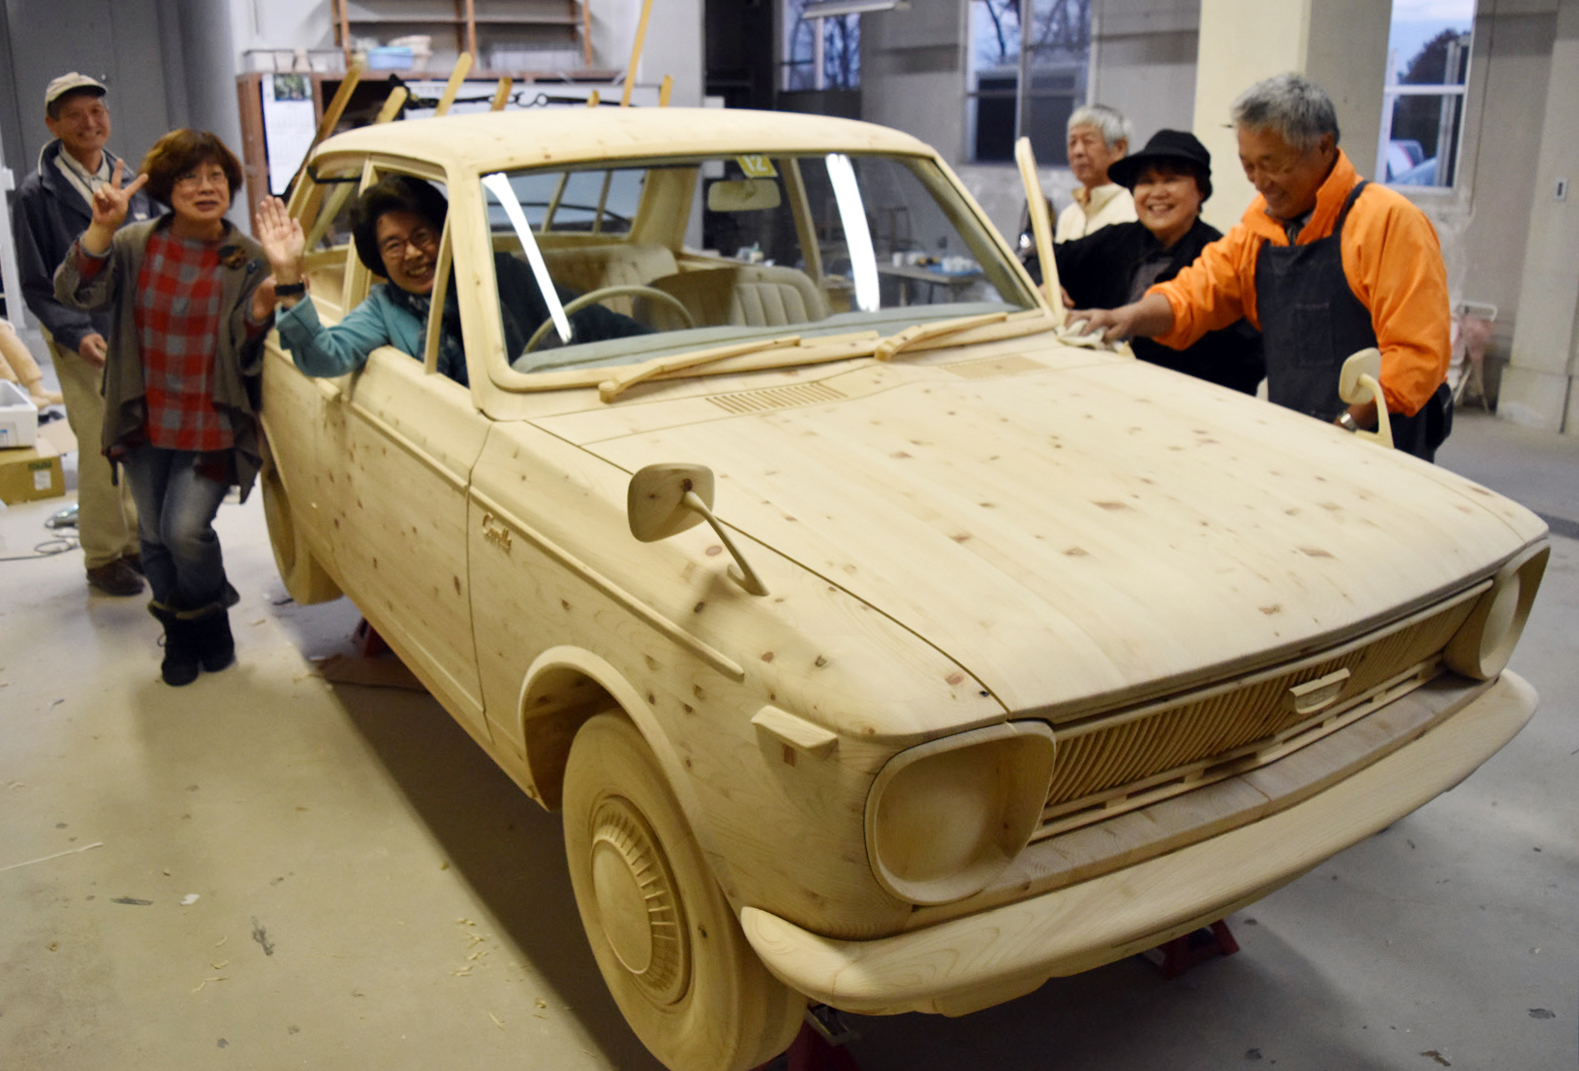 Members of a volunteer group pose around a life-sized wooden replica of a first-generation Toyota Corolla on Dec. 8 in Toyota, Aichi Prefecture.   CHUNICHI SHIMBUN